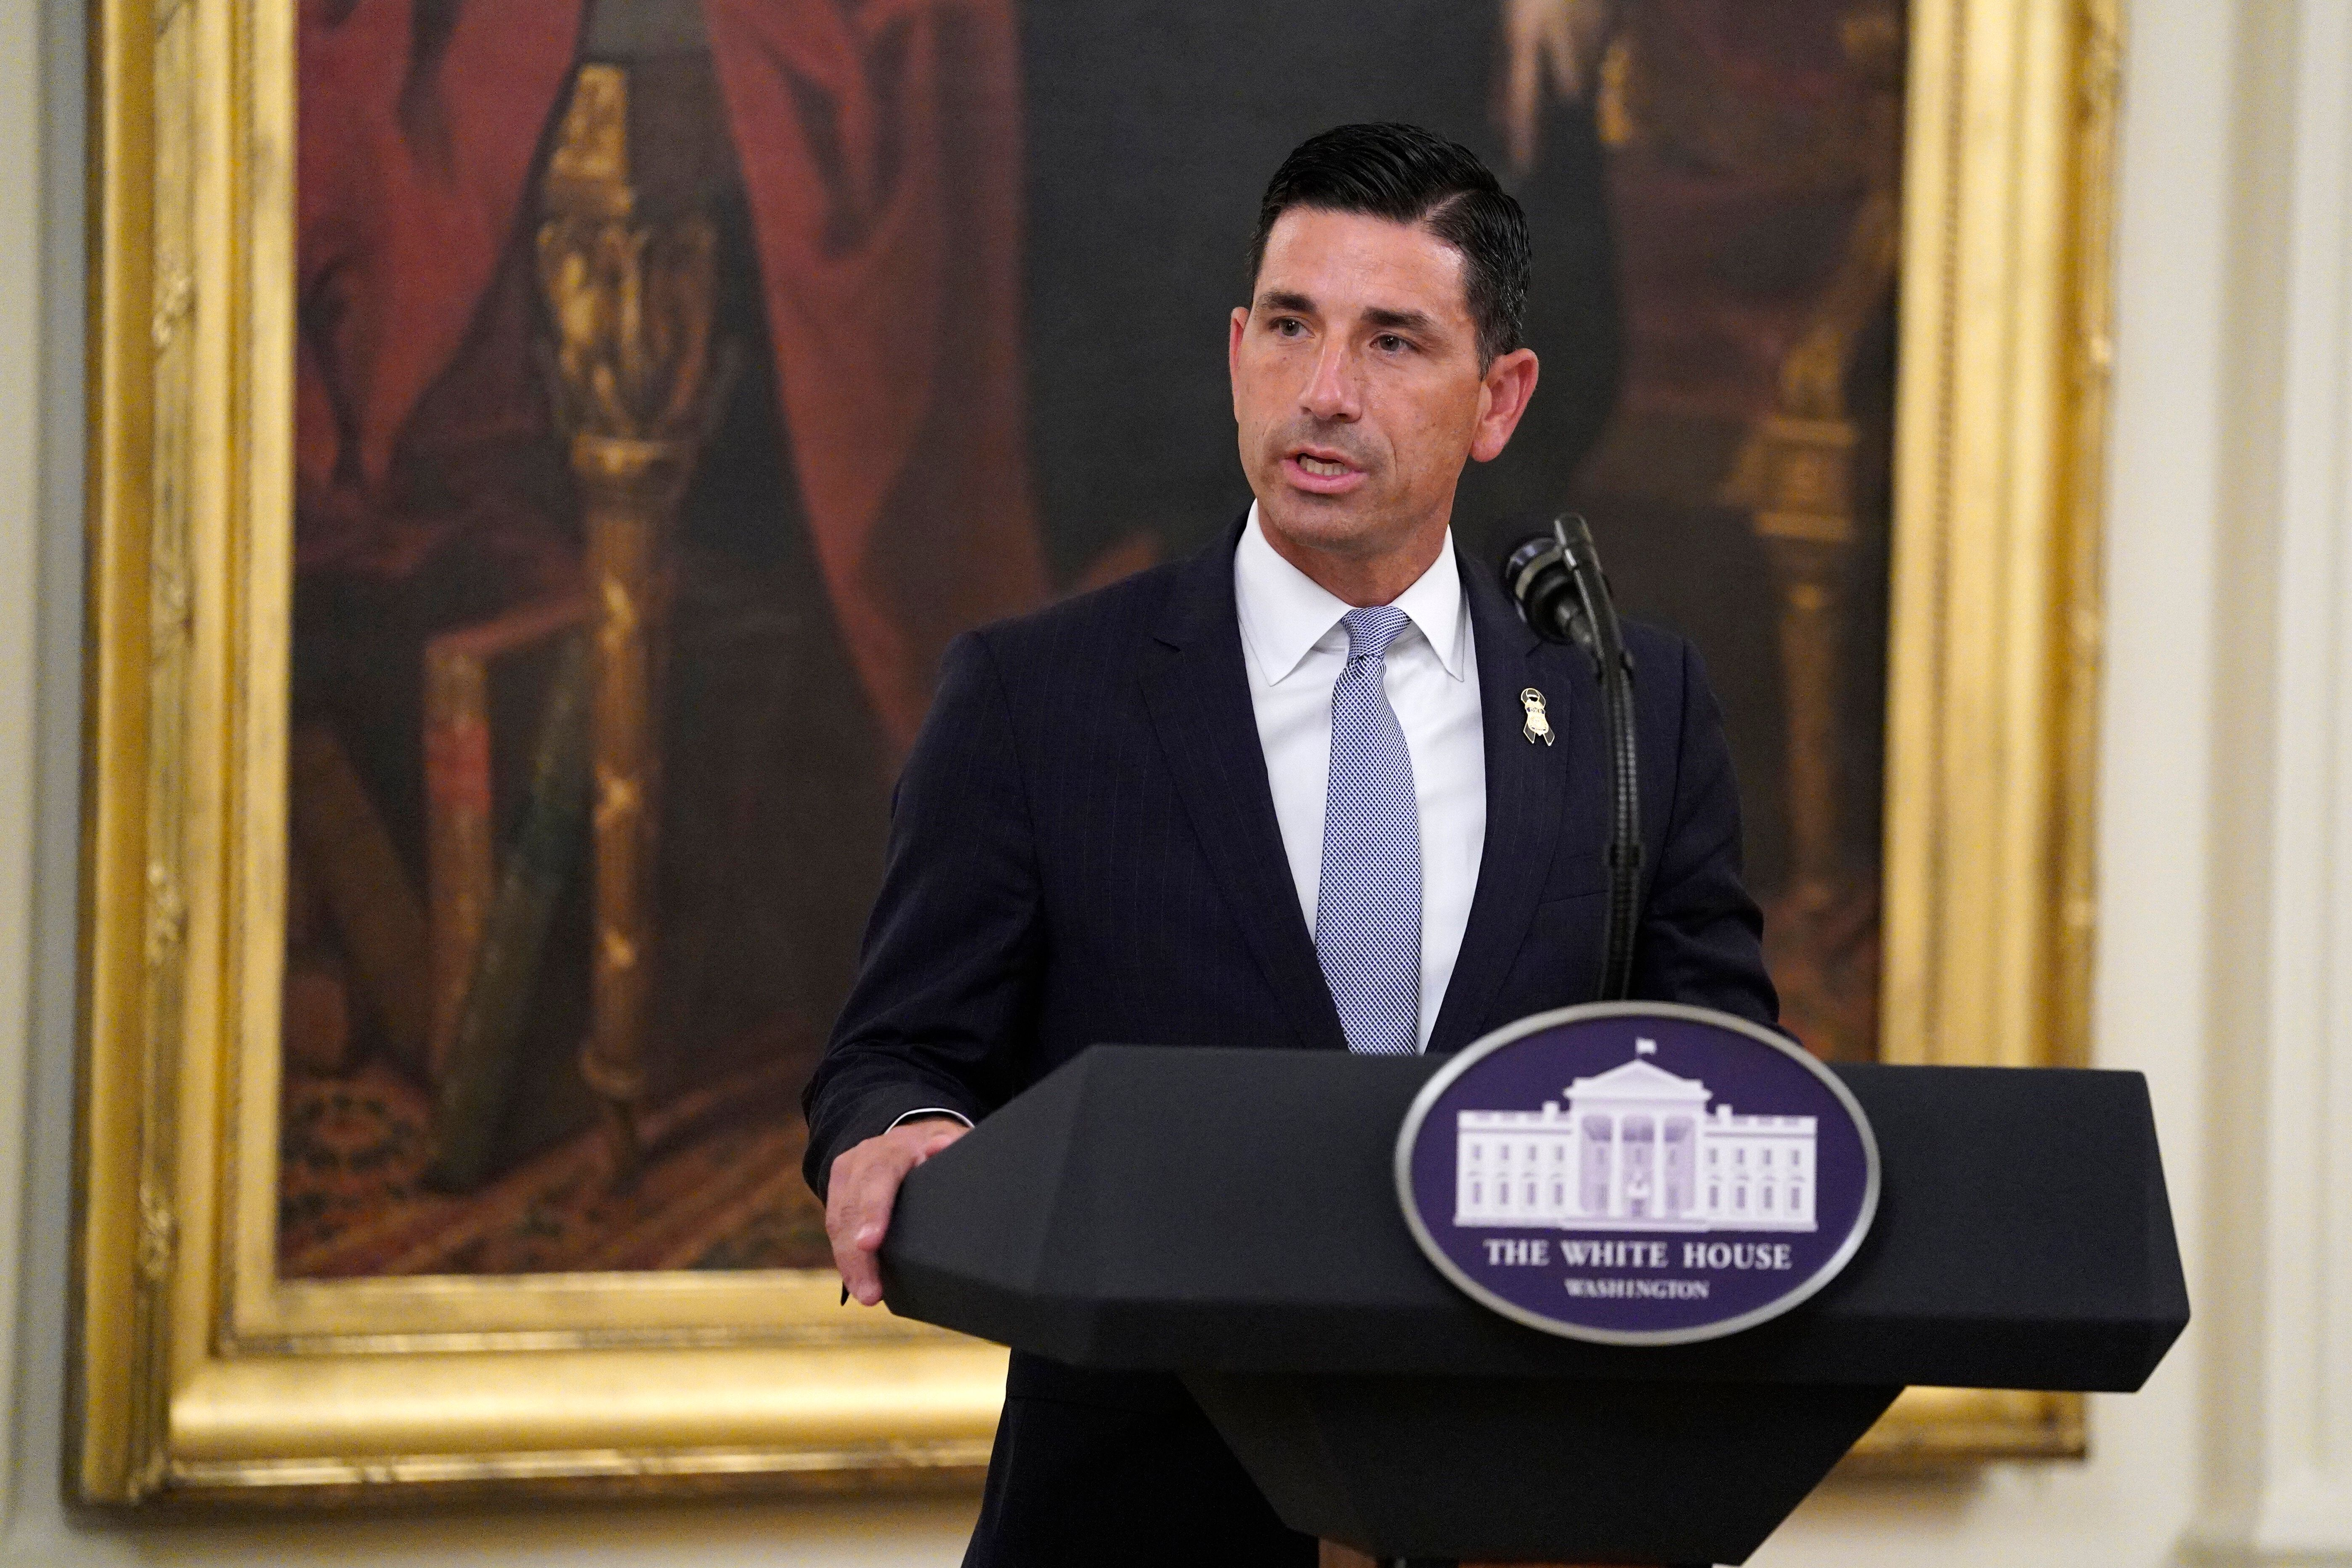 Chad Wolf, acting Secretary of Homeland Security, speaks at the White House in July.